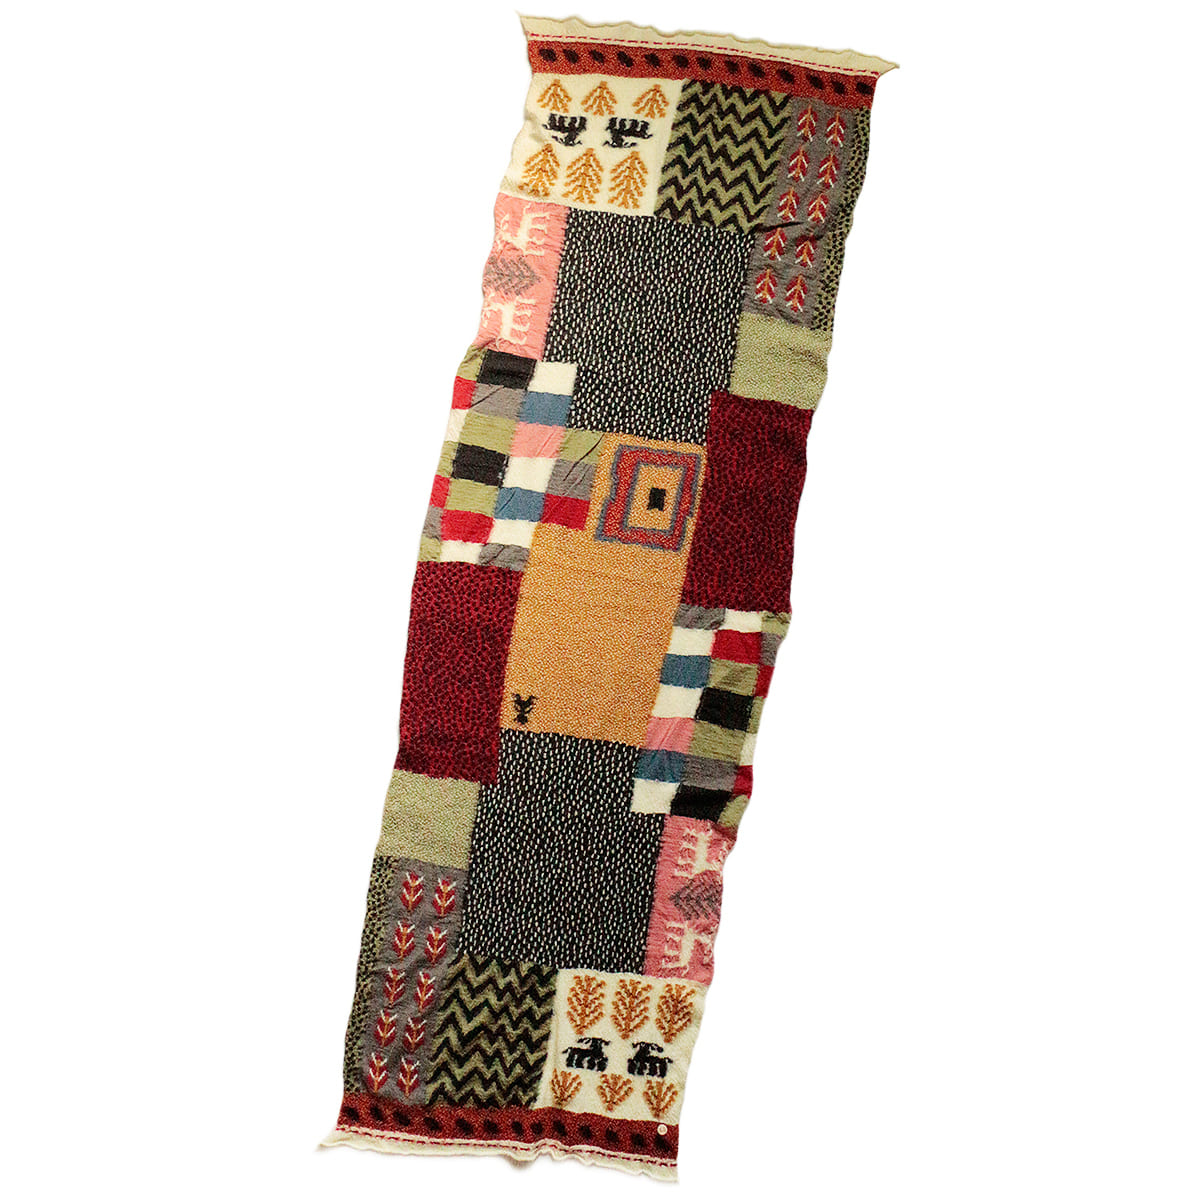 [KAPITAL] COMPRESSED WOOL SCARF VILLAGE GABBEH 'RED'